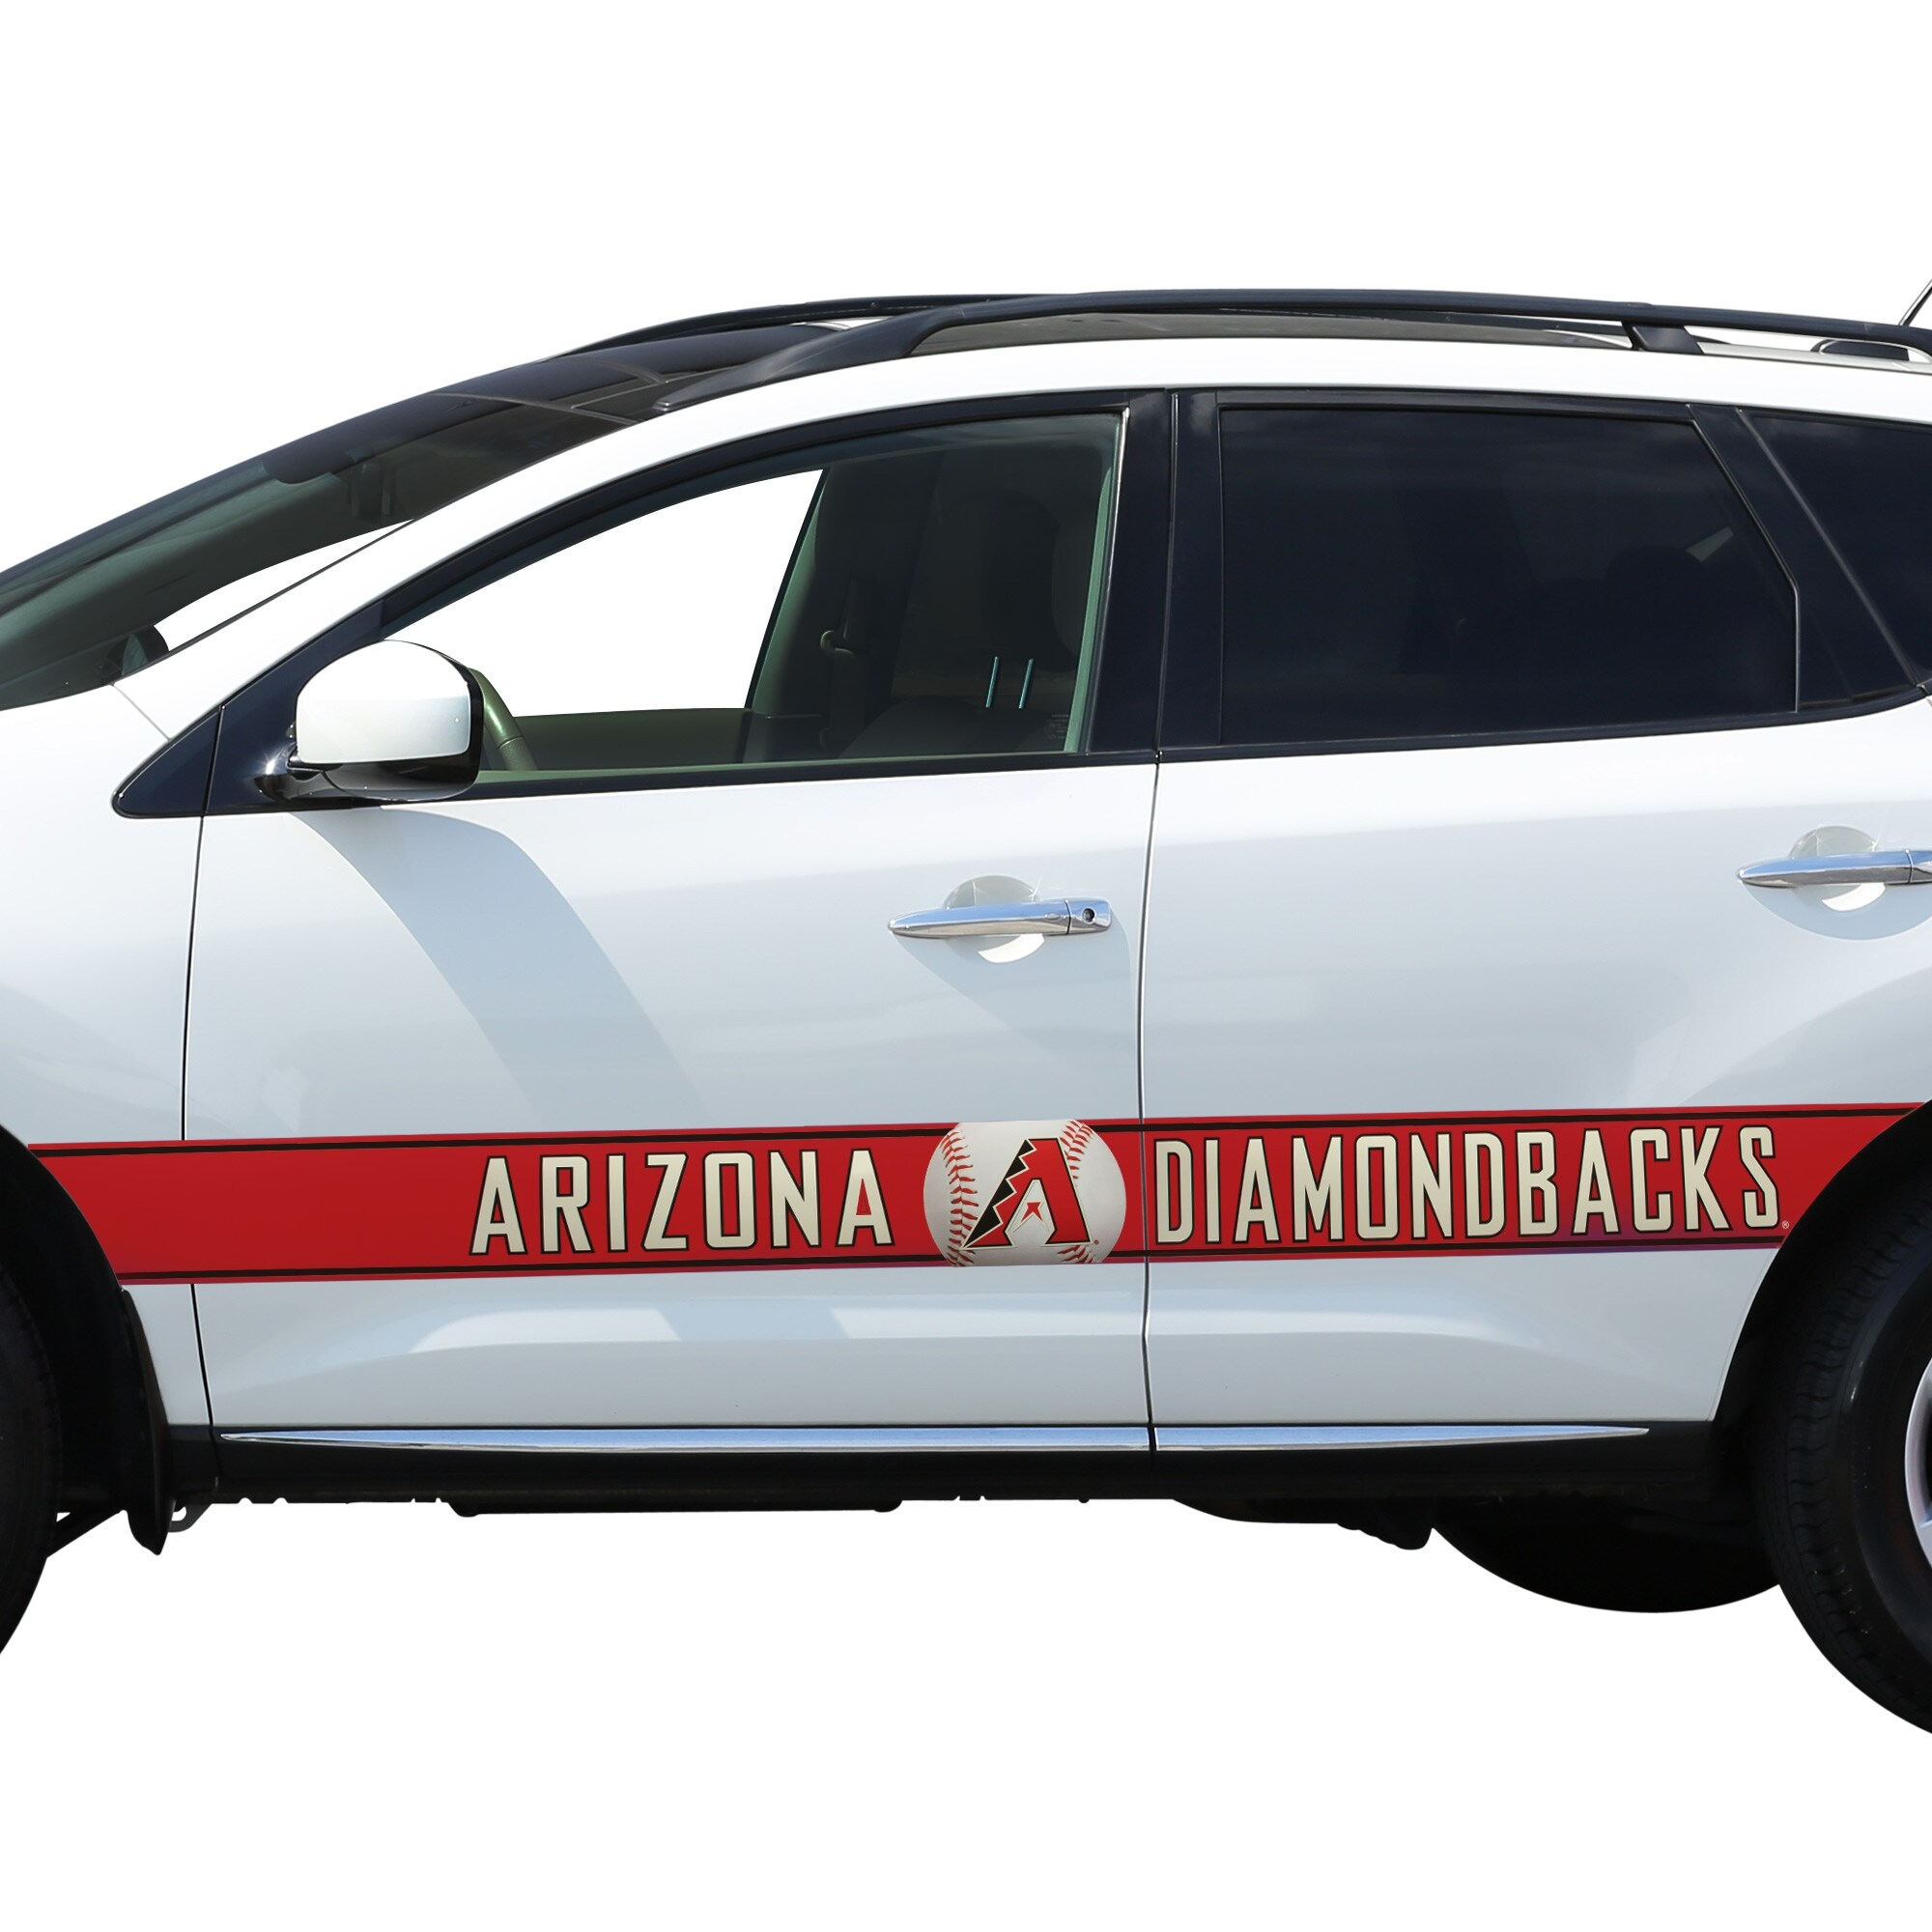 Arizona Diamondbacks Team Ball Racing Stripe Car Decals